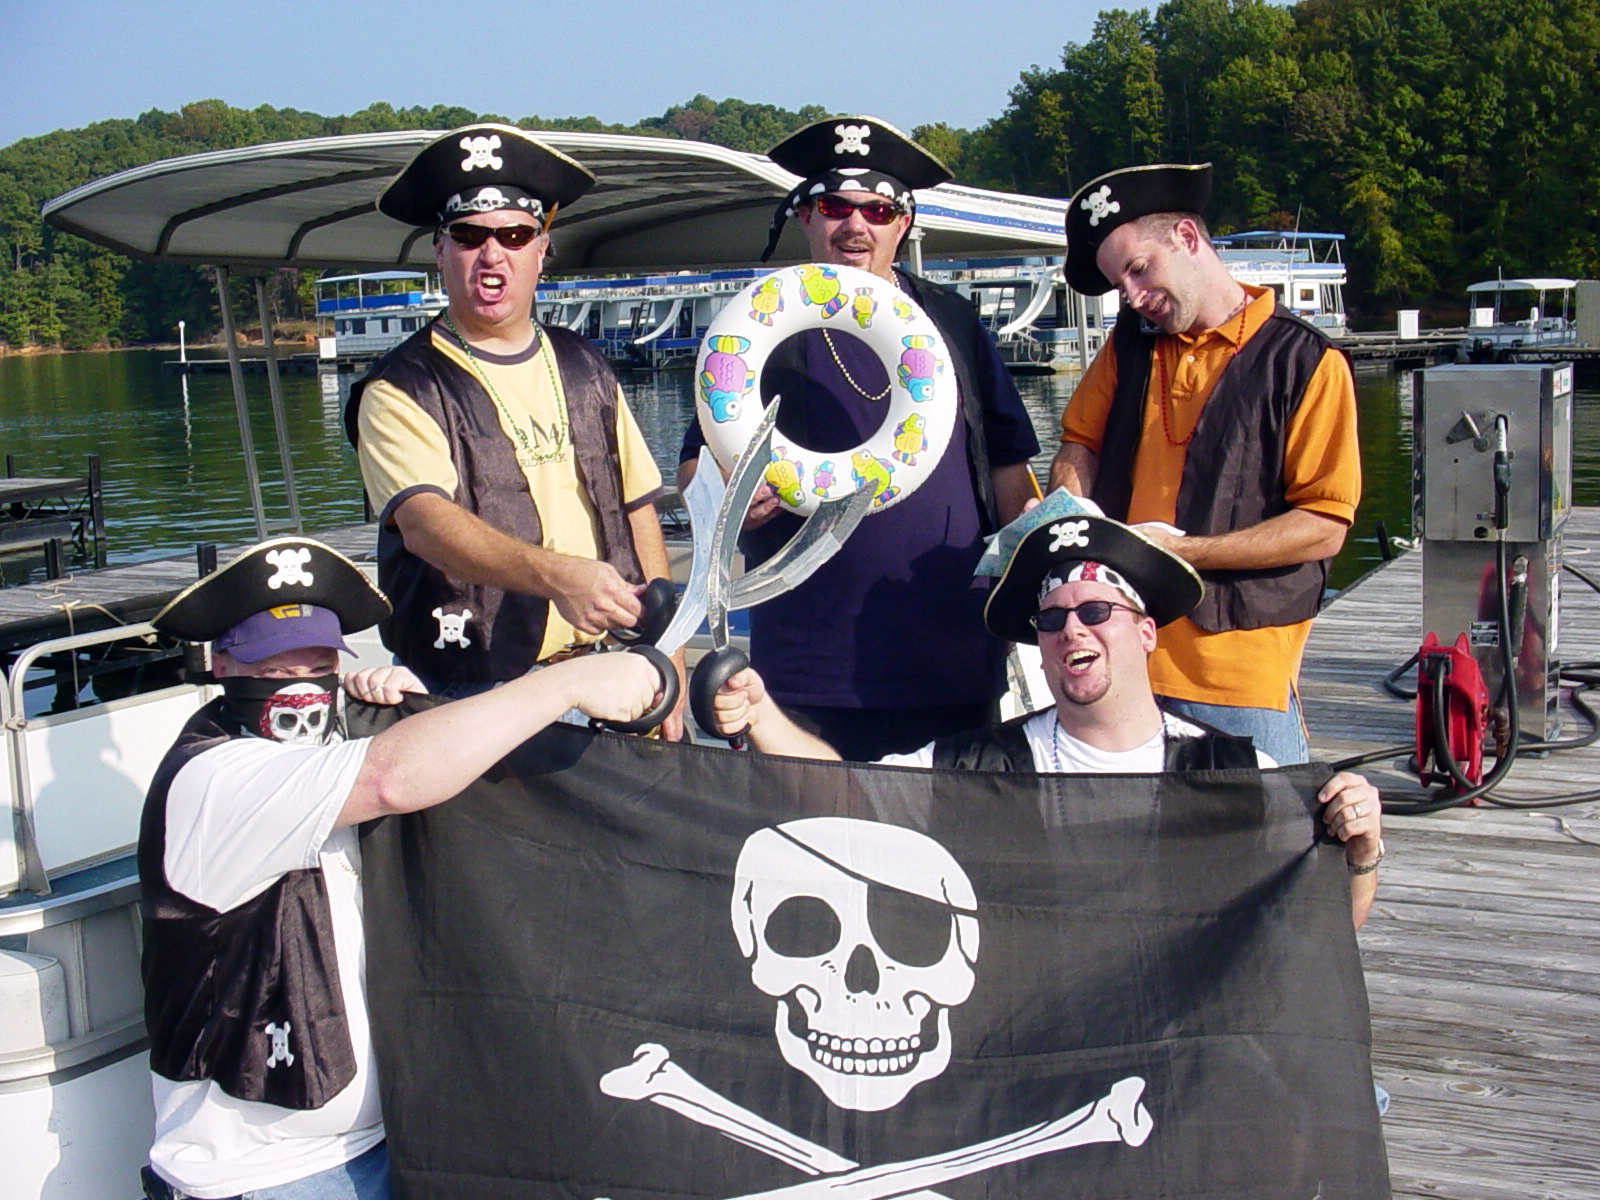 Pirate Cruise on Lake Lanier